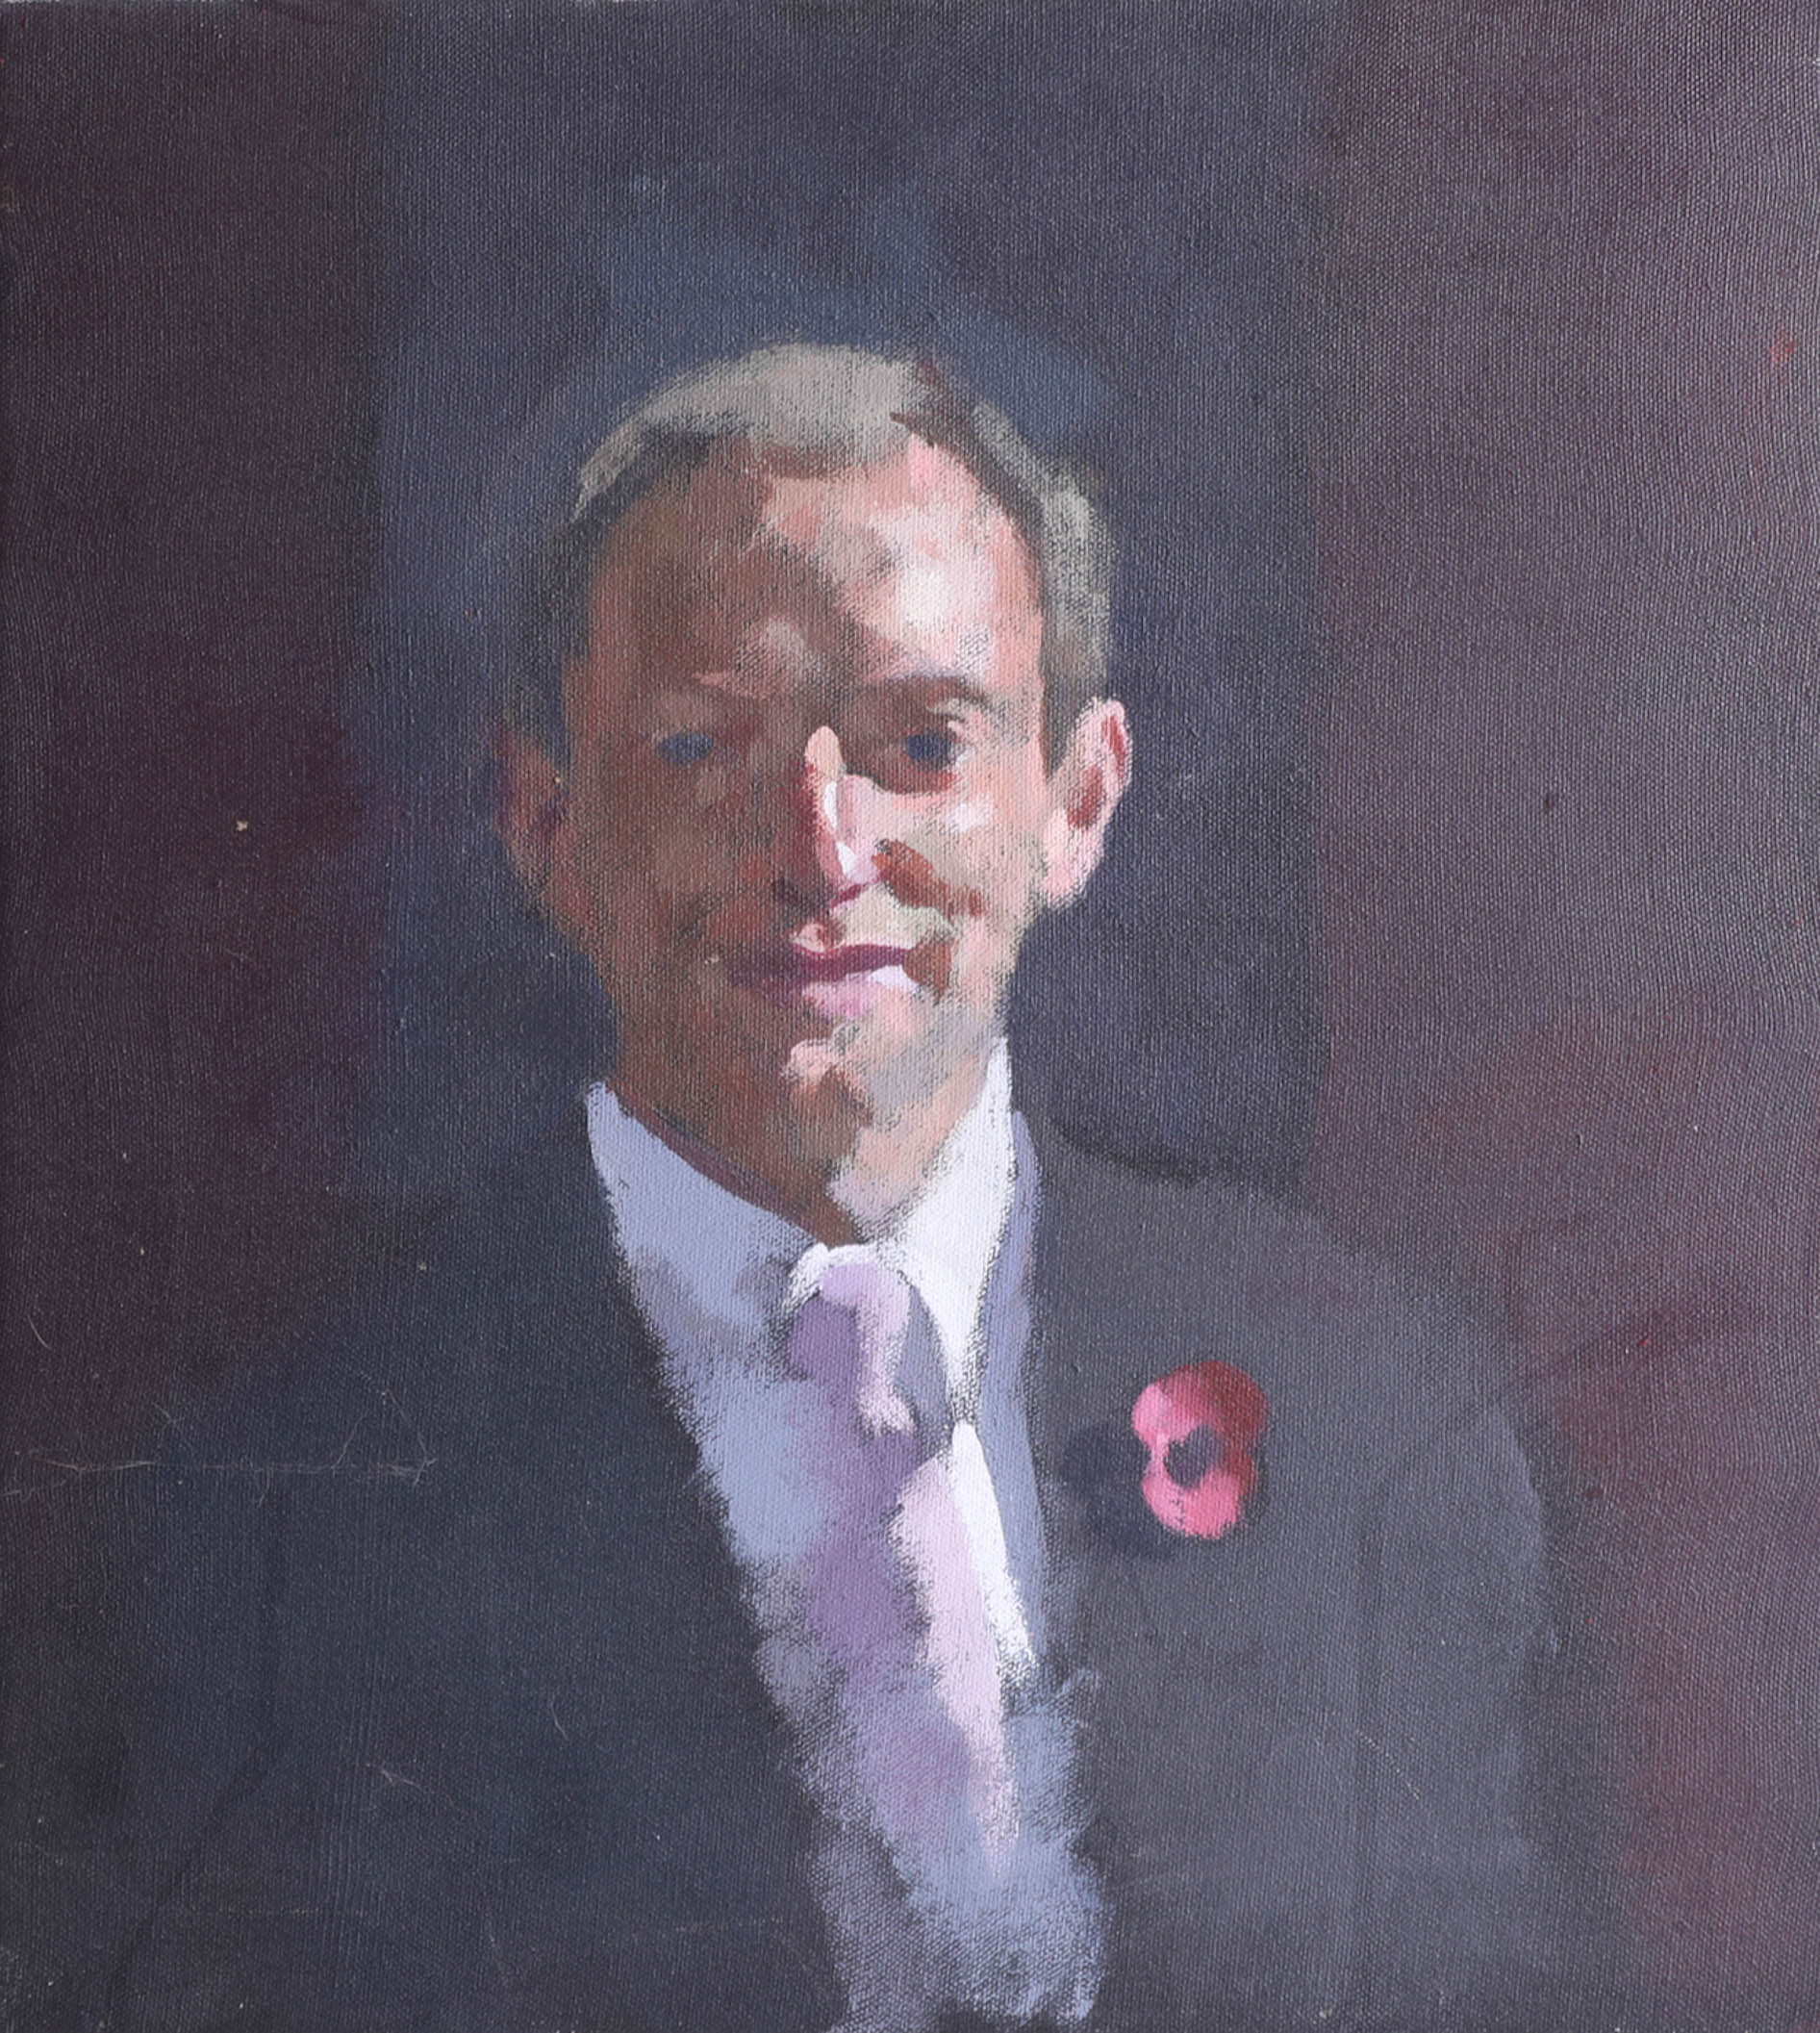 Lot 041 - Louise Courtnell, oil on canvas, portrait of 'Justin Leigh, children in need' 11/1/05, BBC Spotlight